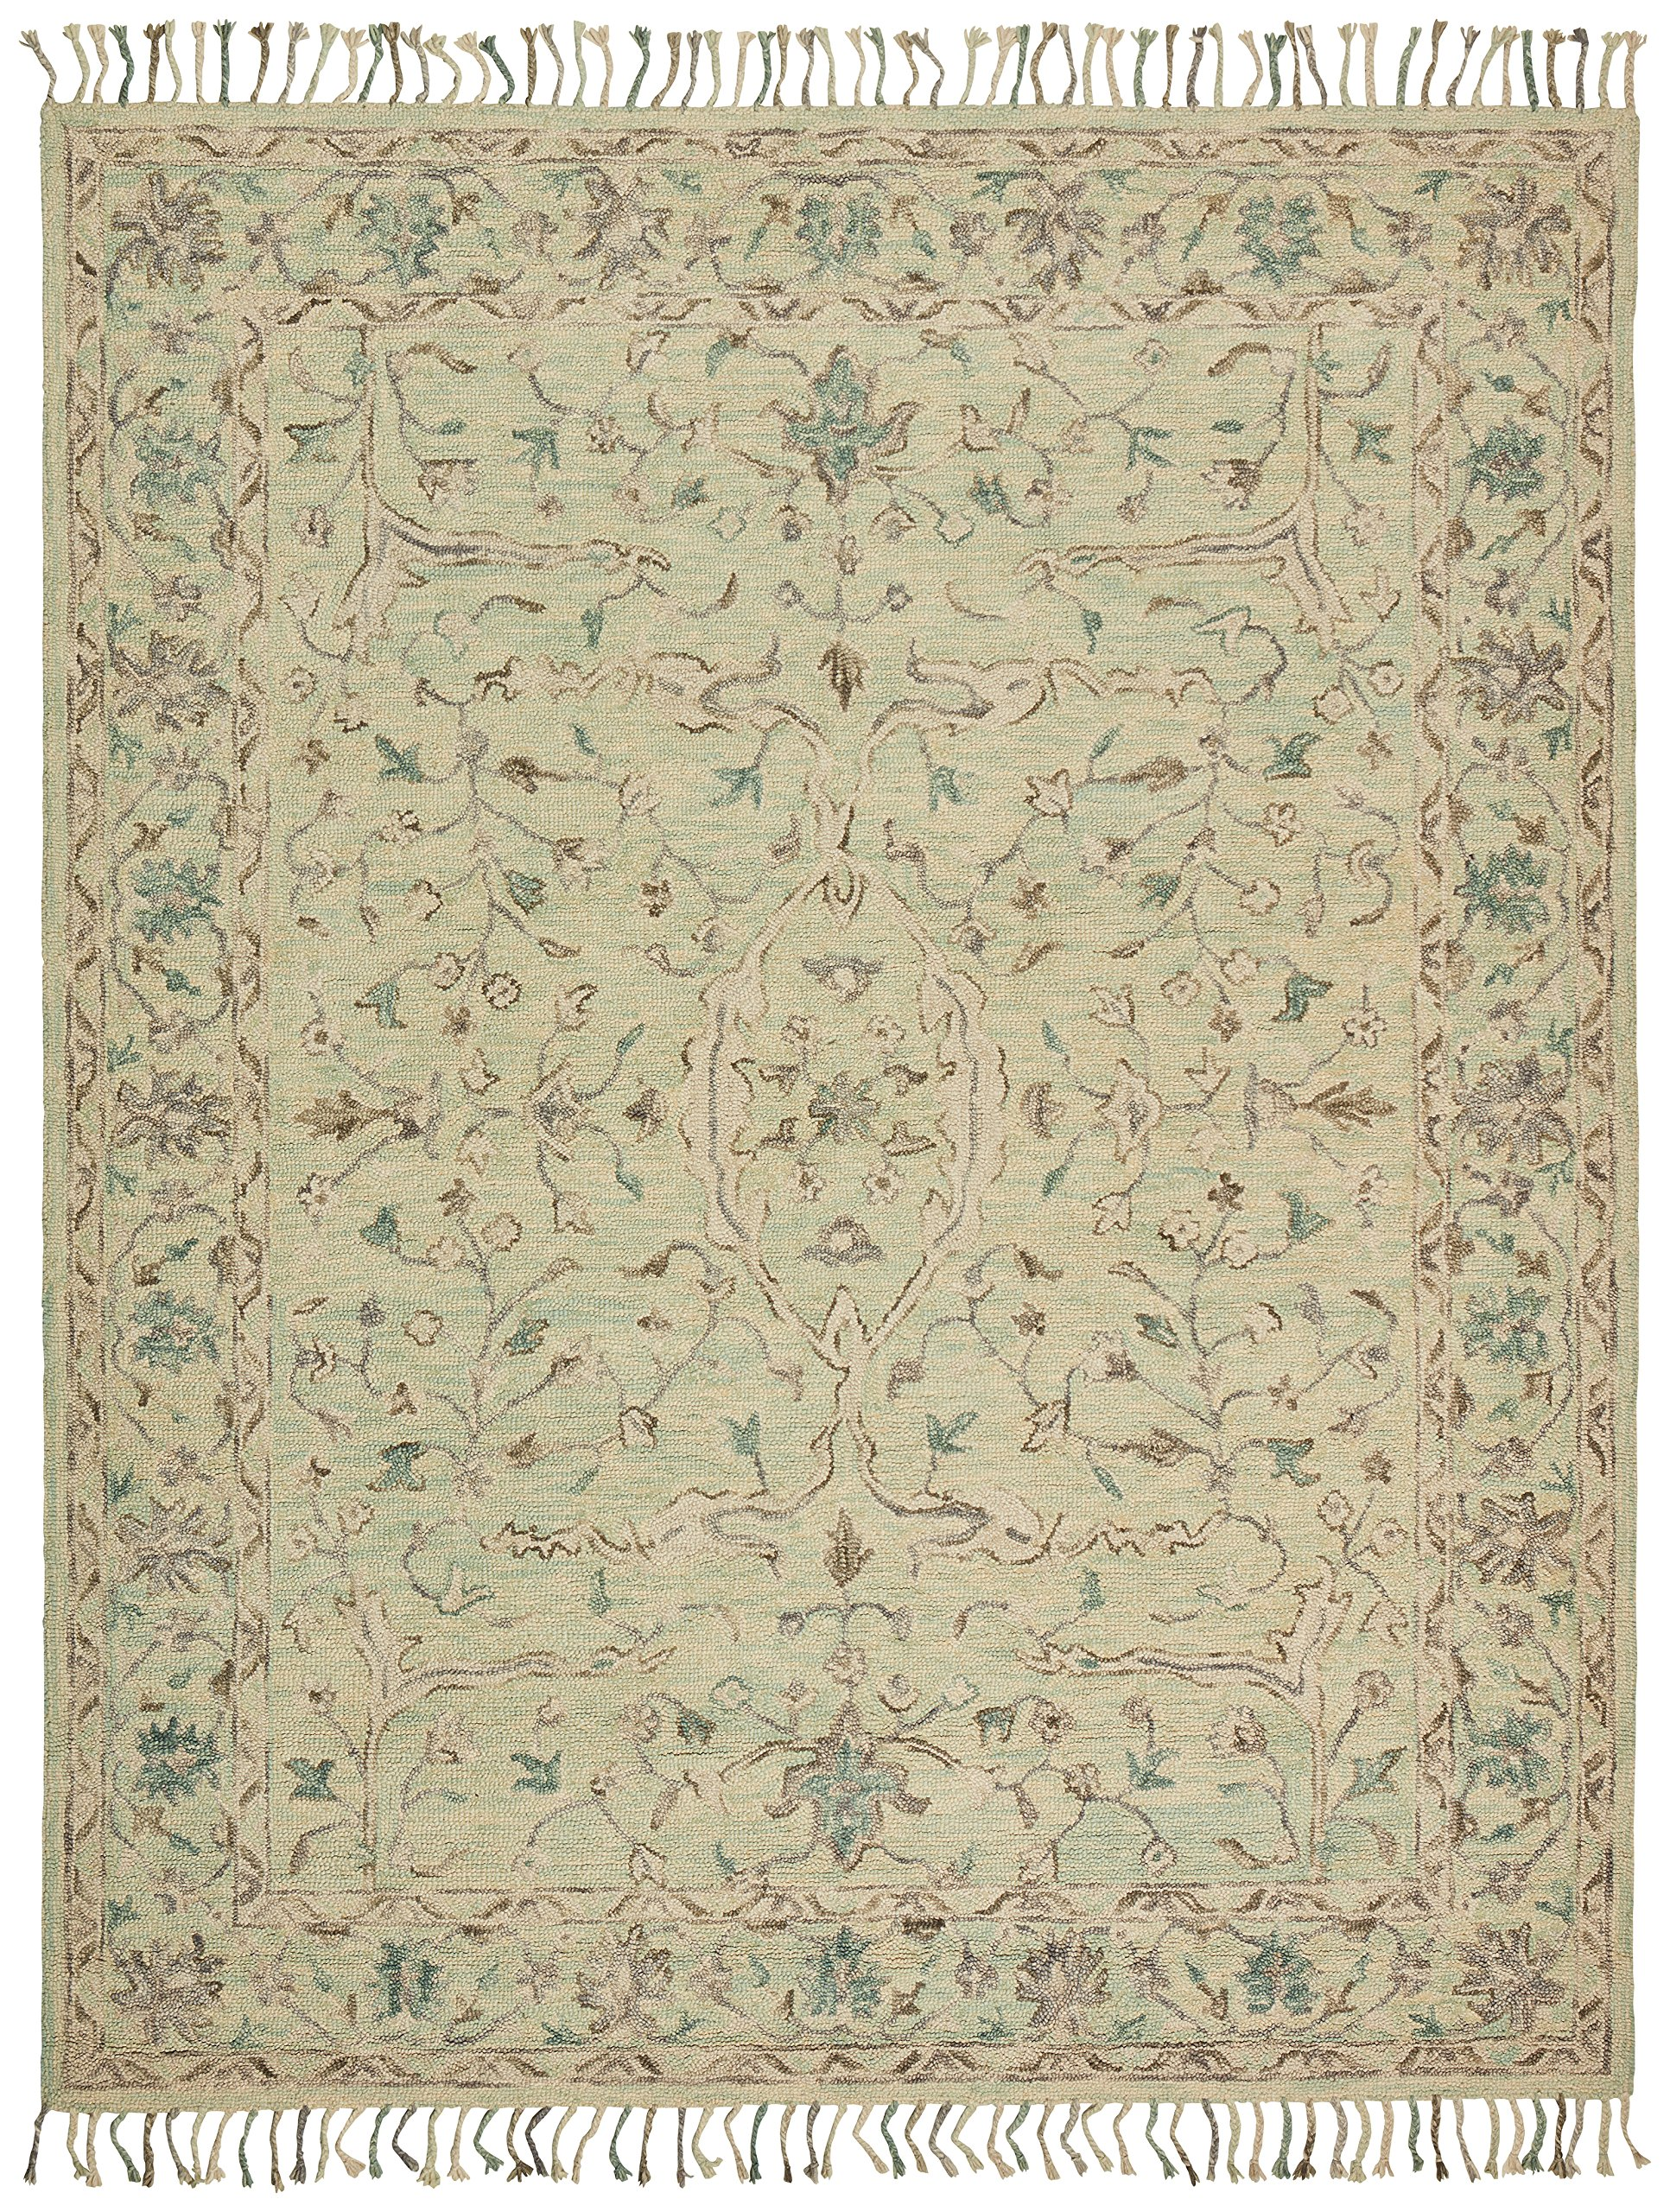 Stone & Beam Serene Transitional Wool Area Rug, 8' x 10', Multi by Stone & Beam (Image #1)